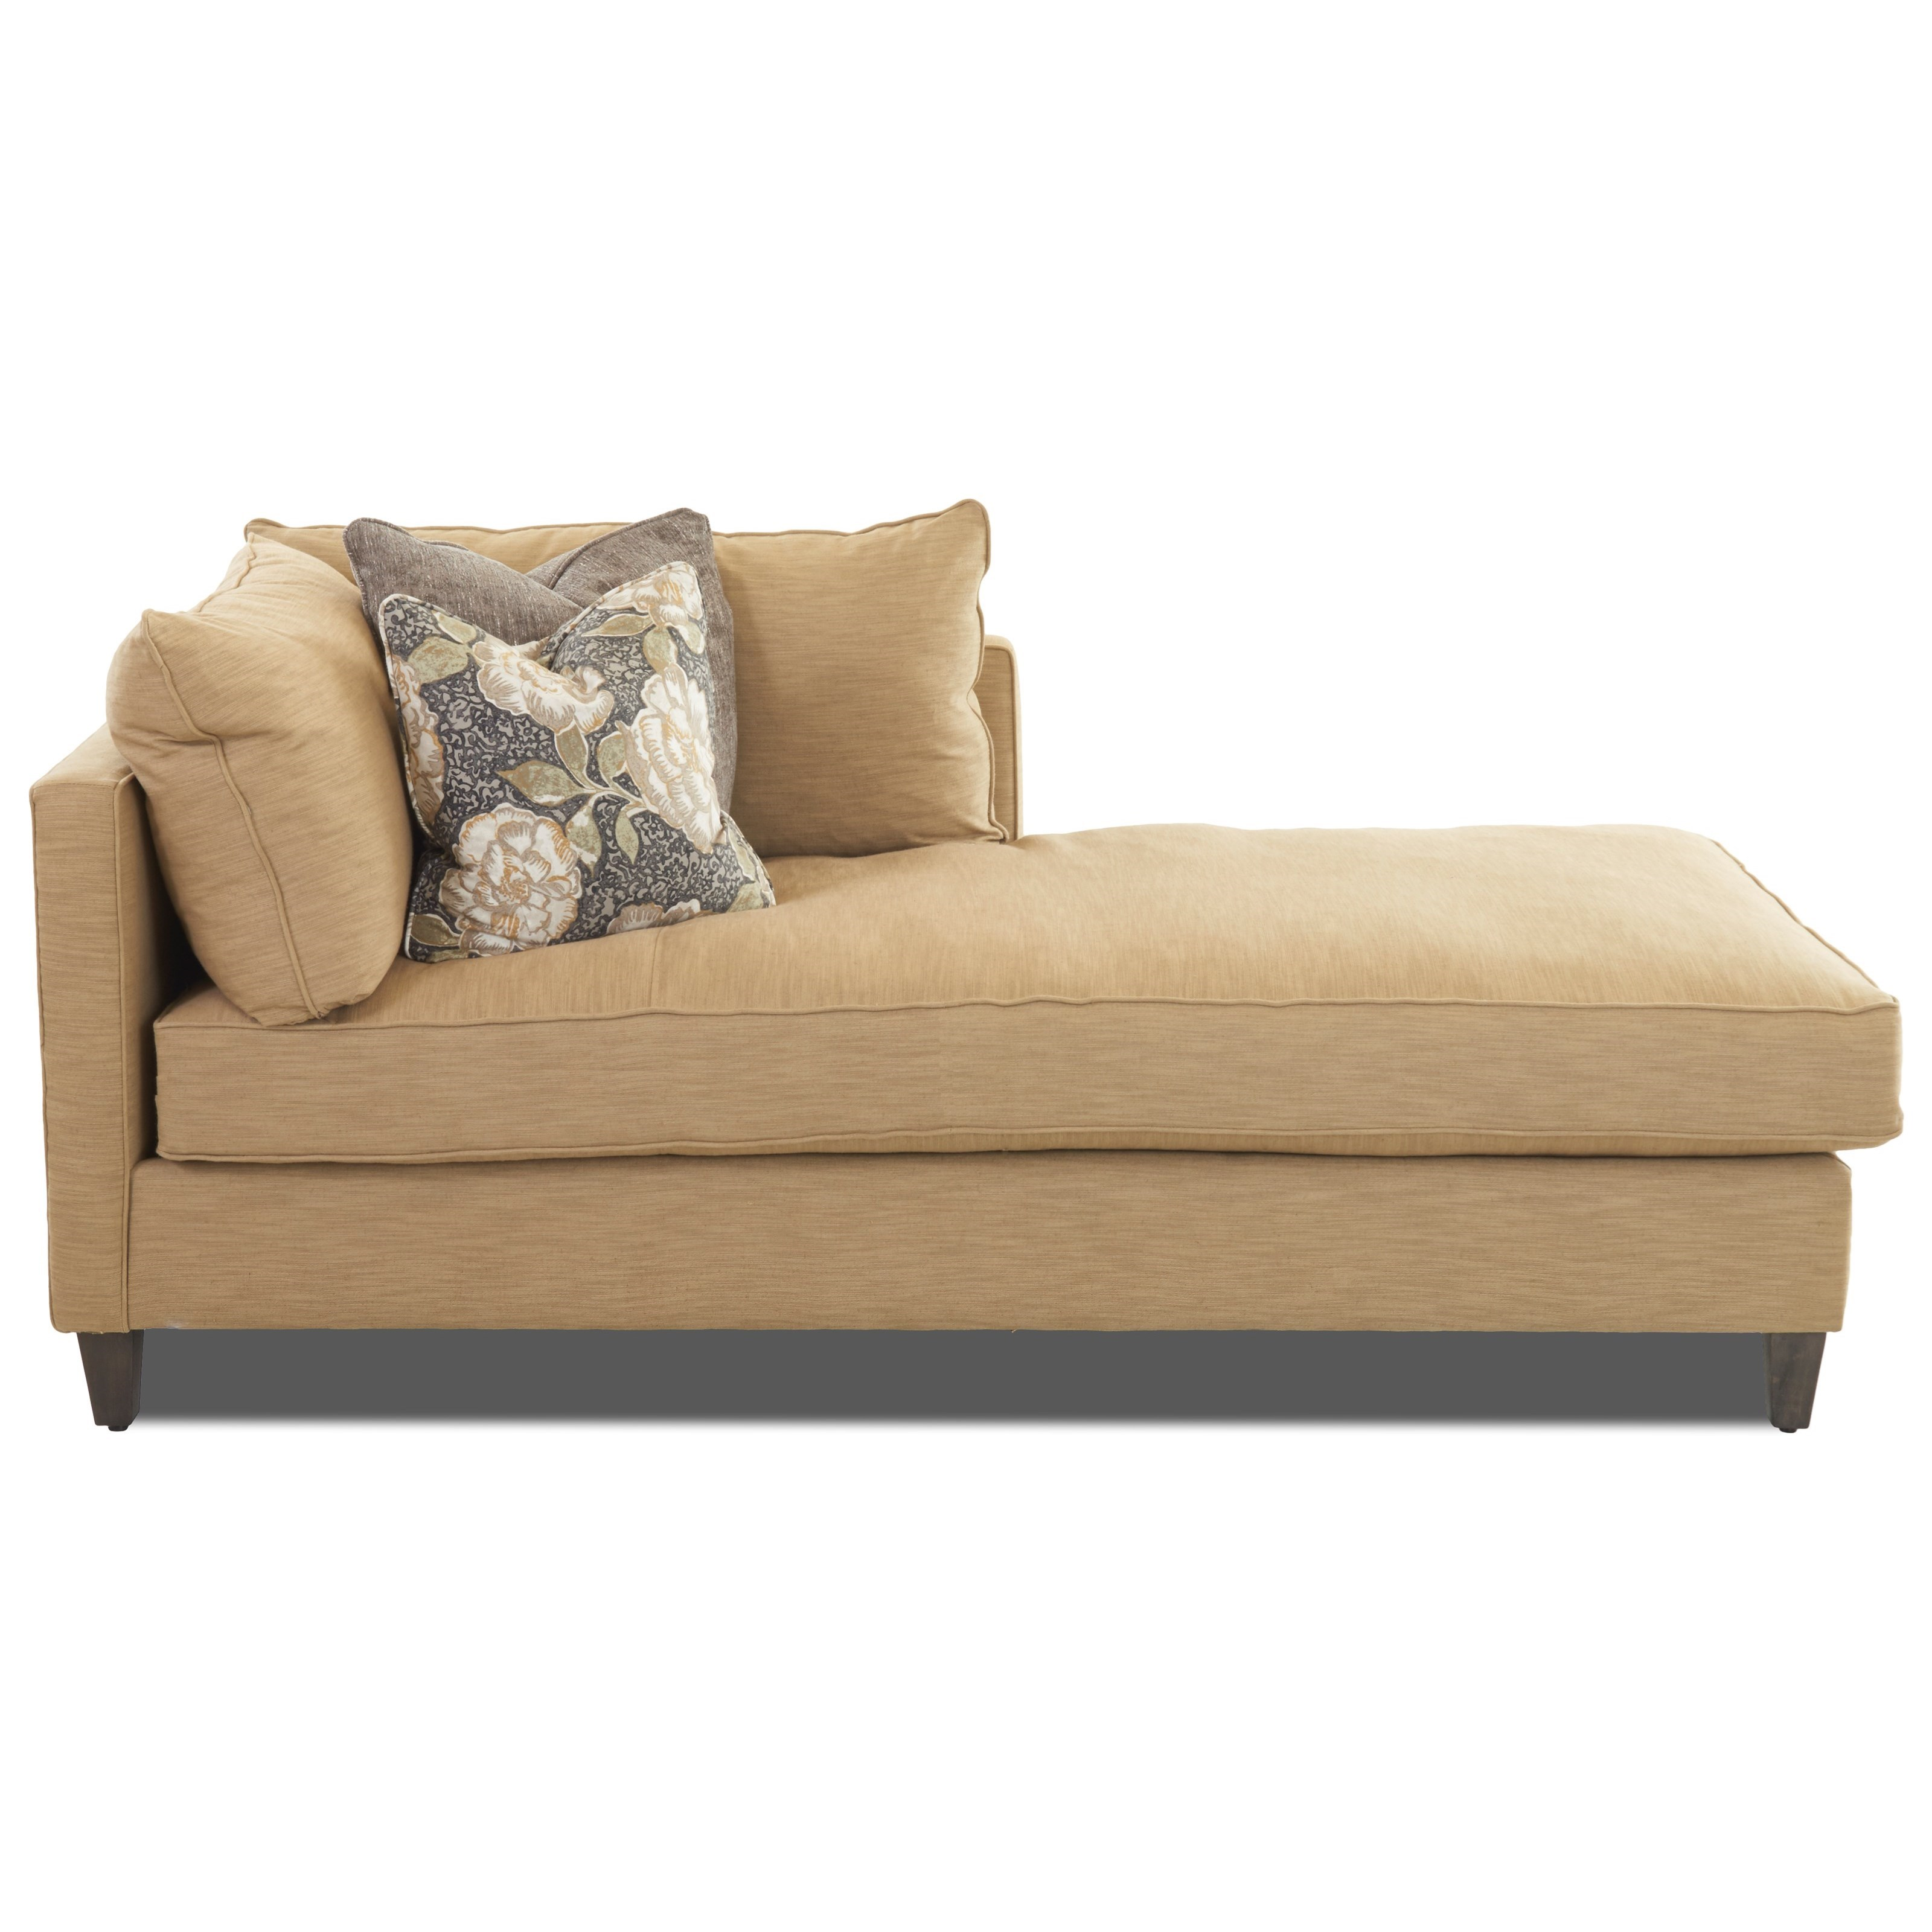 1 Arm Right Facing Chaise Lounge with Down Blend Cushions